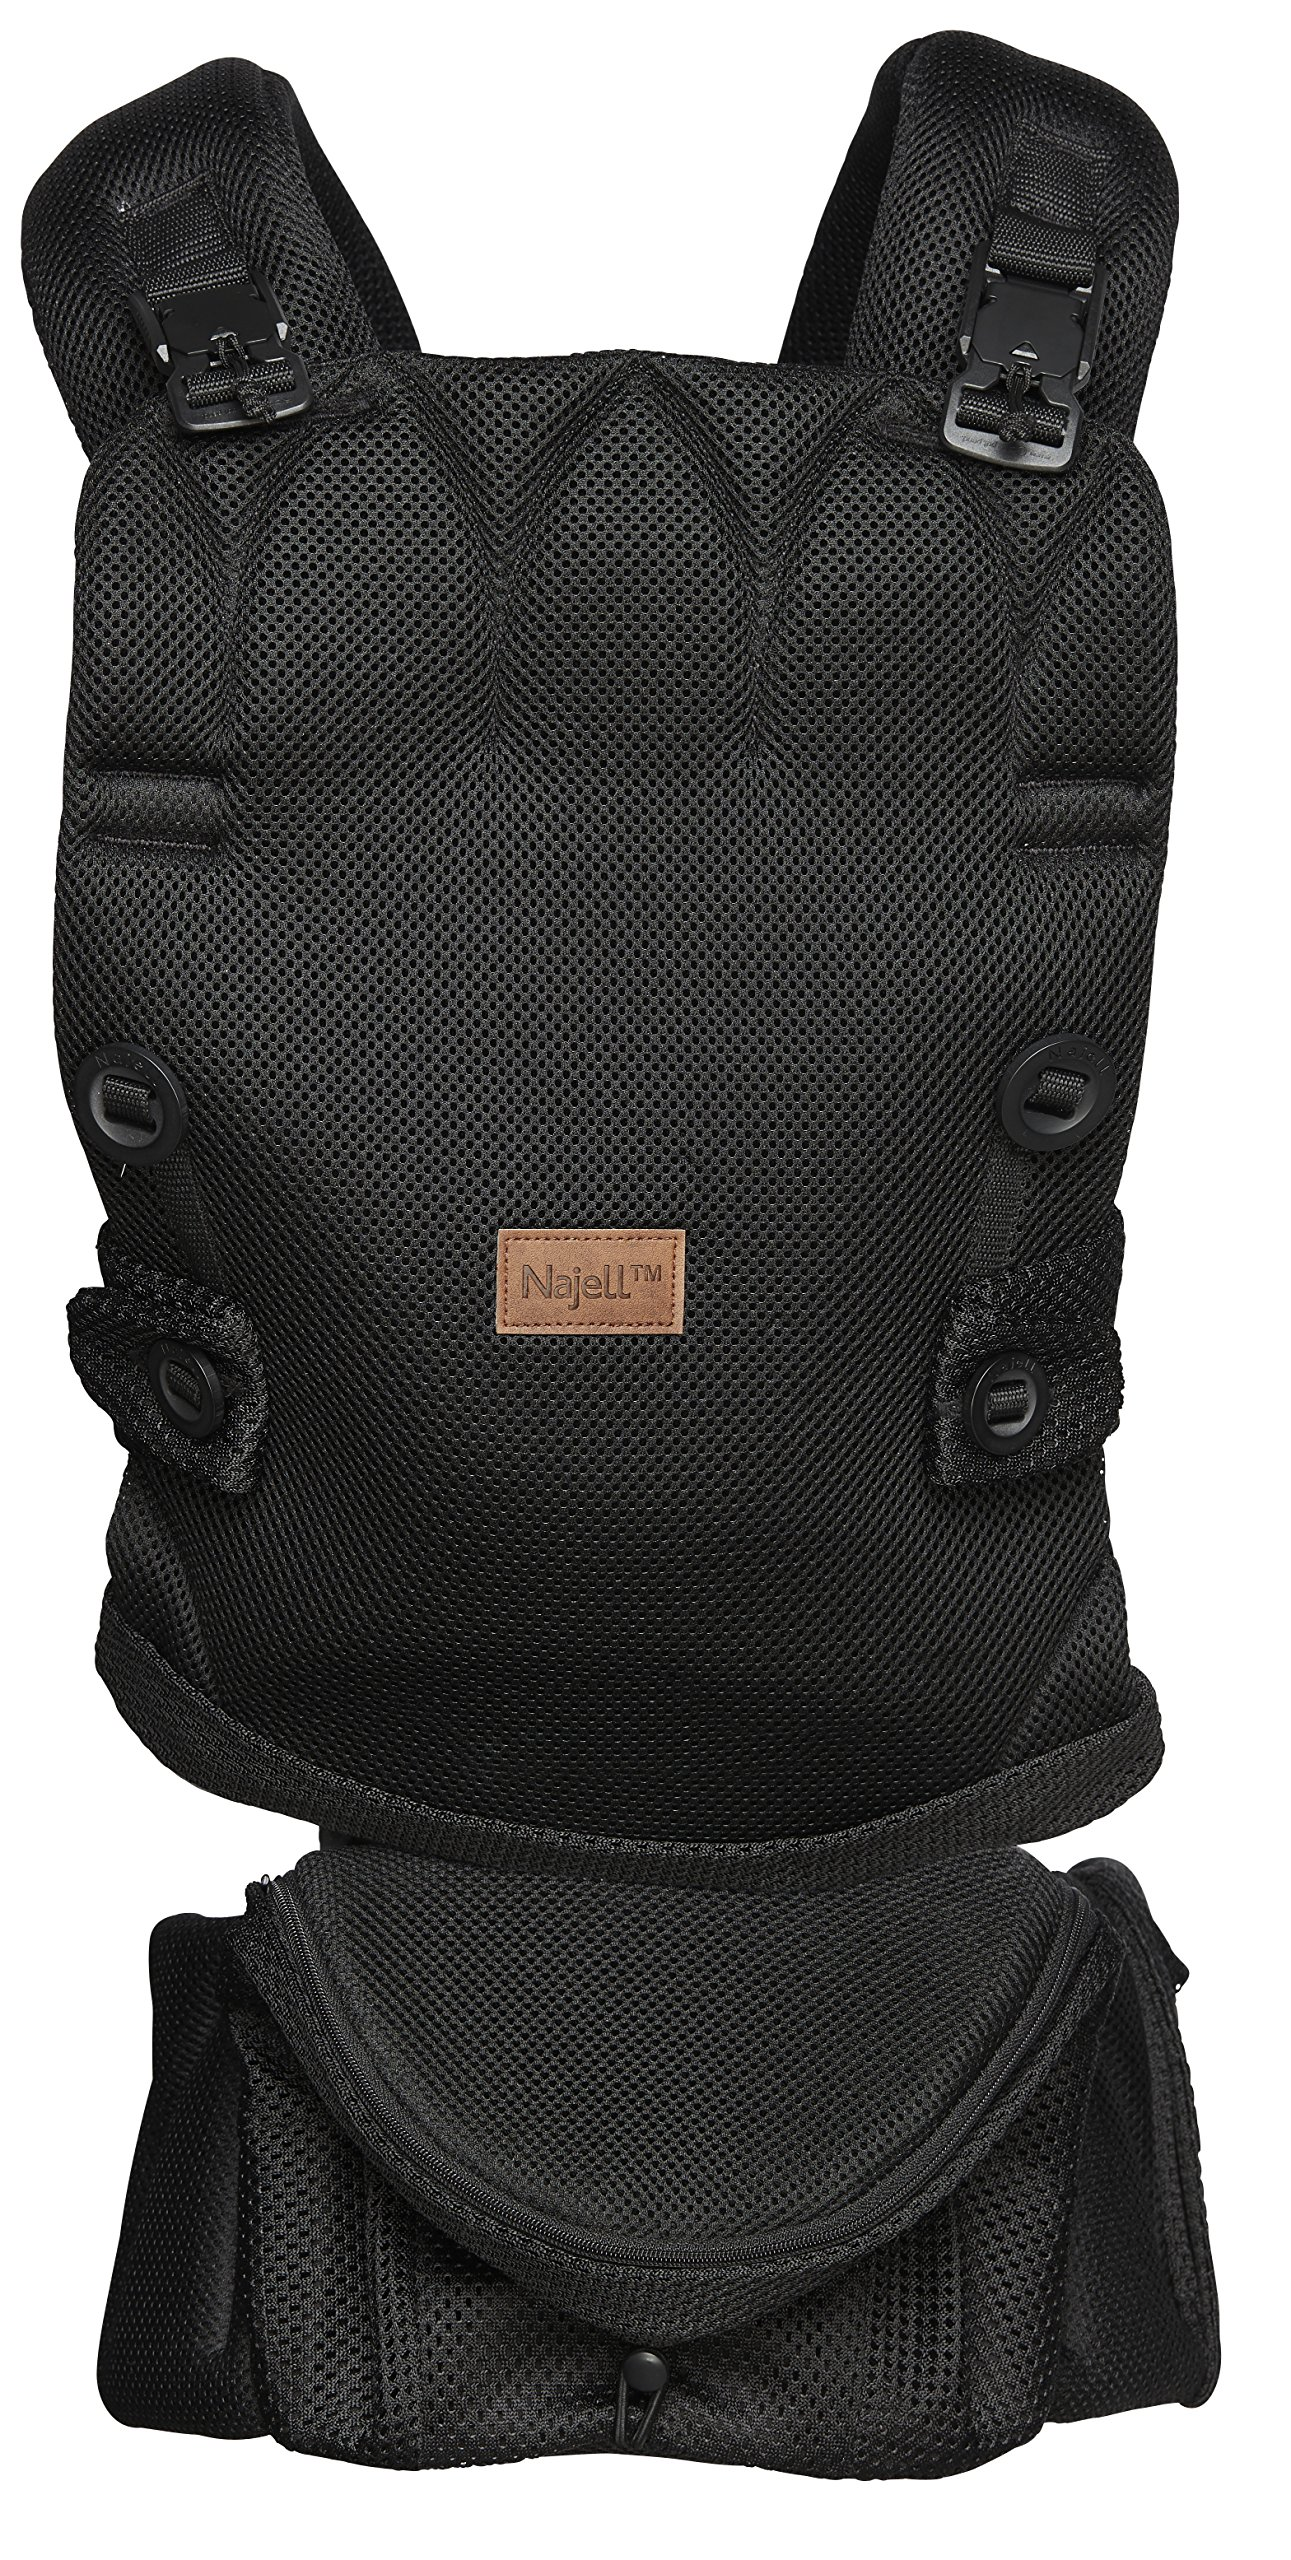 Najell Omni Active Mesh Baby Carrier with Hip Seat, Brilliant Black Béaba New-born ergonomic position and hips seat from 6 months. Market leading weight distribution with hip seat, recommended by the international hip dysplasia institute as a hip-healthy baby carrier Weight: 3, 5 to 15 kg and age: new-born to 3 years. 2